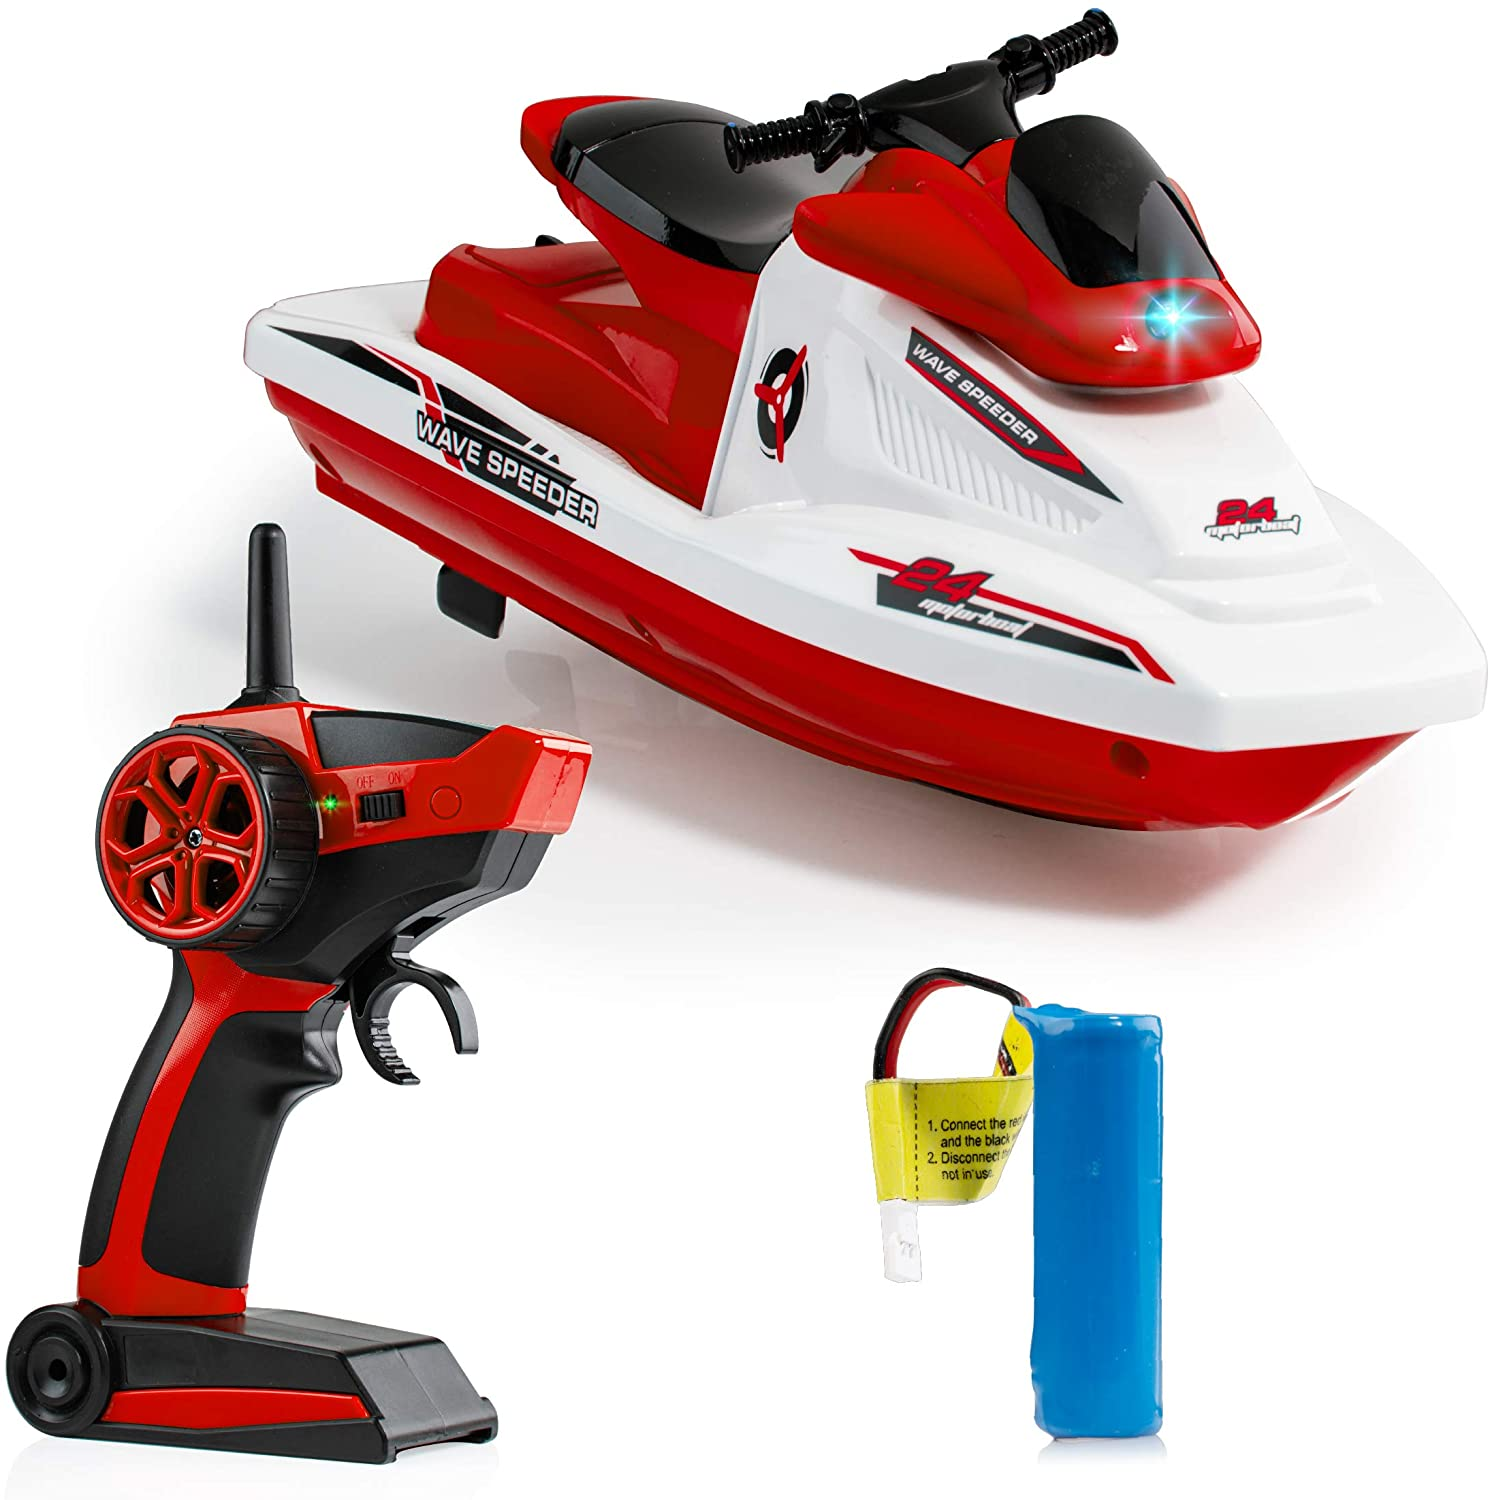 Force1 Wave Speeder RC Boat - Remote Control Boat for Pools and Lakes for Kids and Adults, Long Range Radio Controlled Motor Boat with Waverunner USB Charging Cable and 2.4GHz Remote Control (Red)